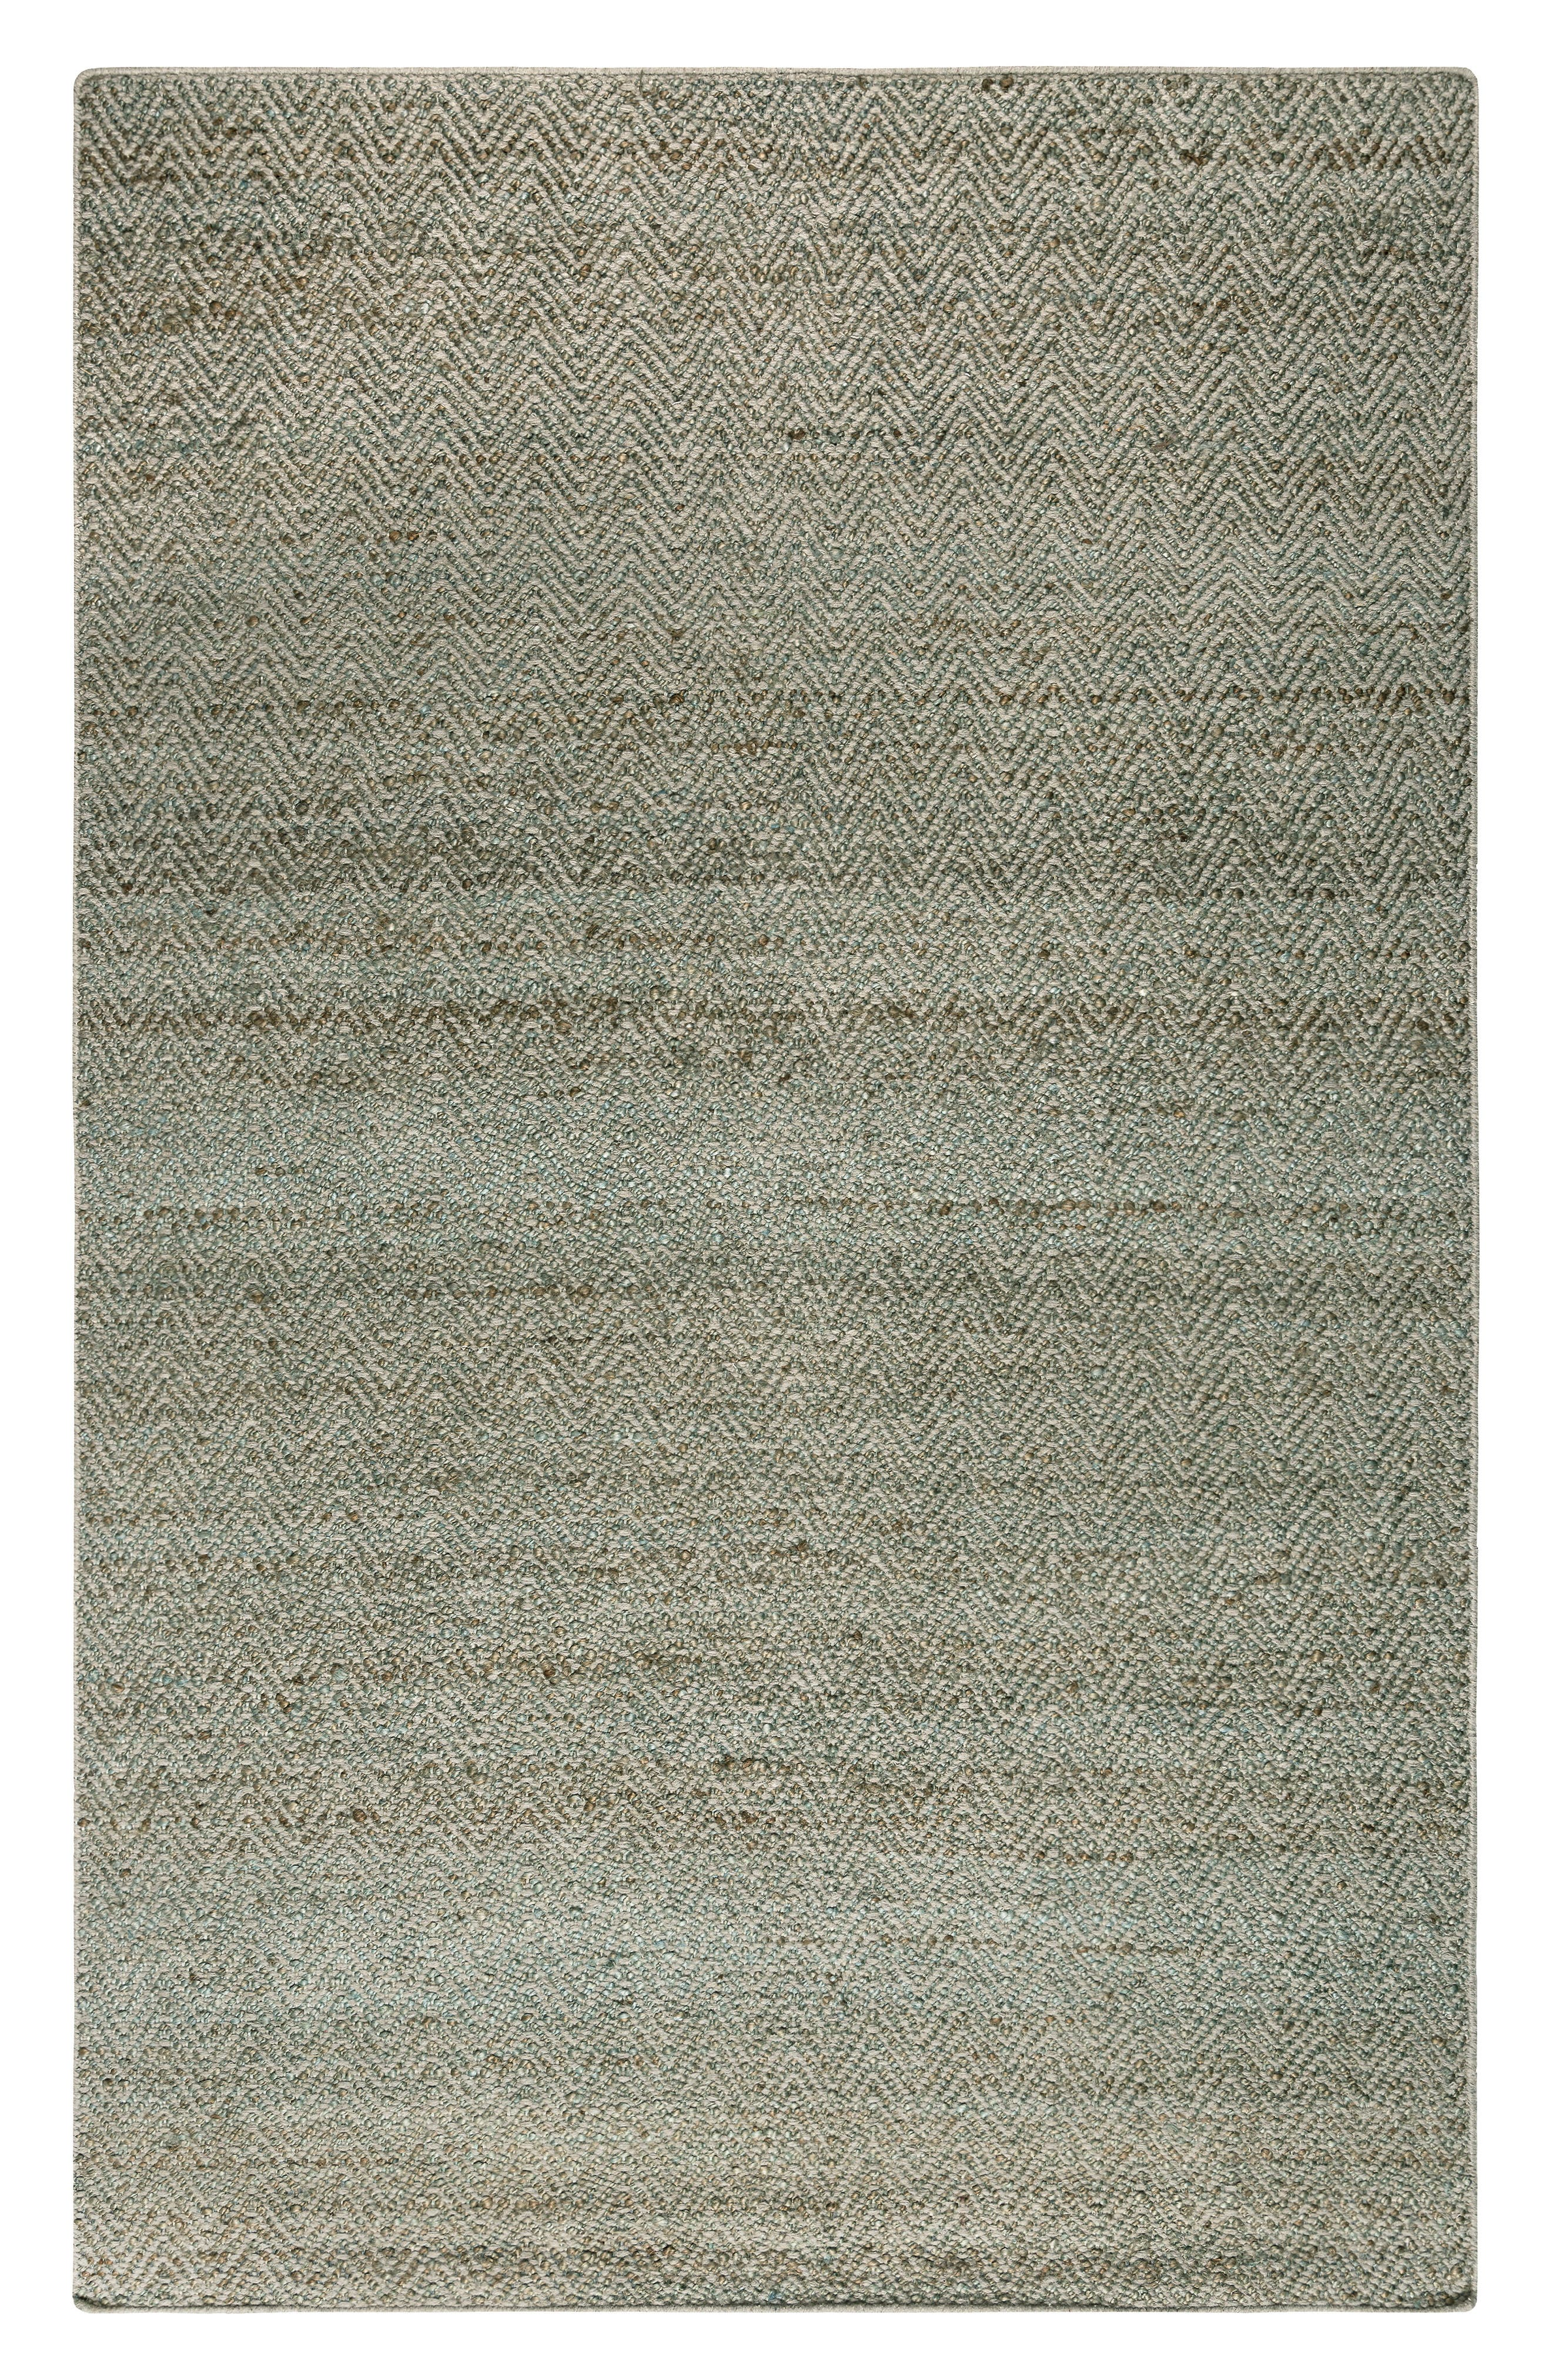 Rizzy Home 'Ellington' Hand Loomed Jute & Wool Area Rug